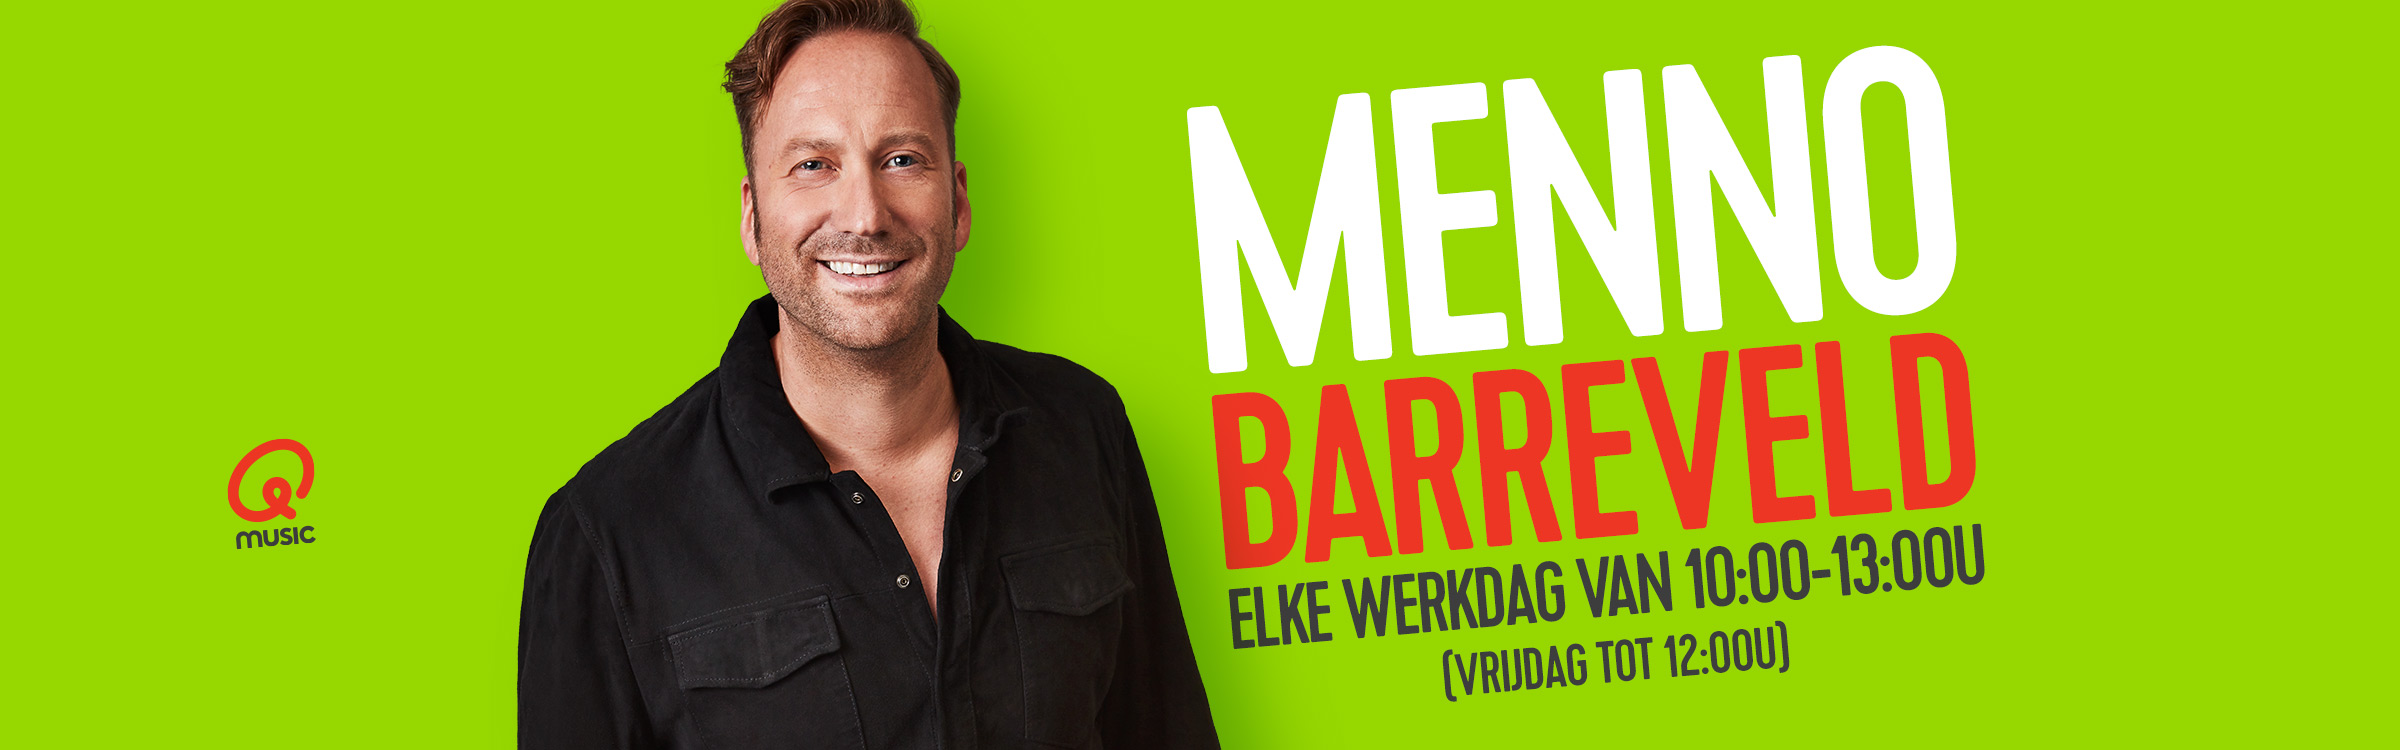 Qmusic actionheader menno2